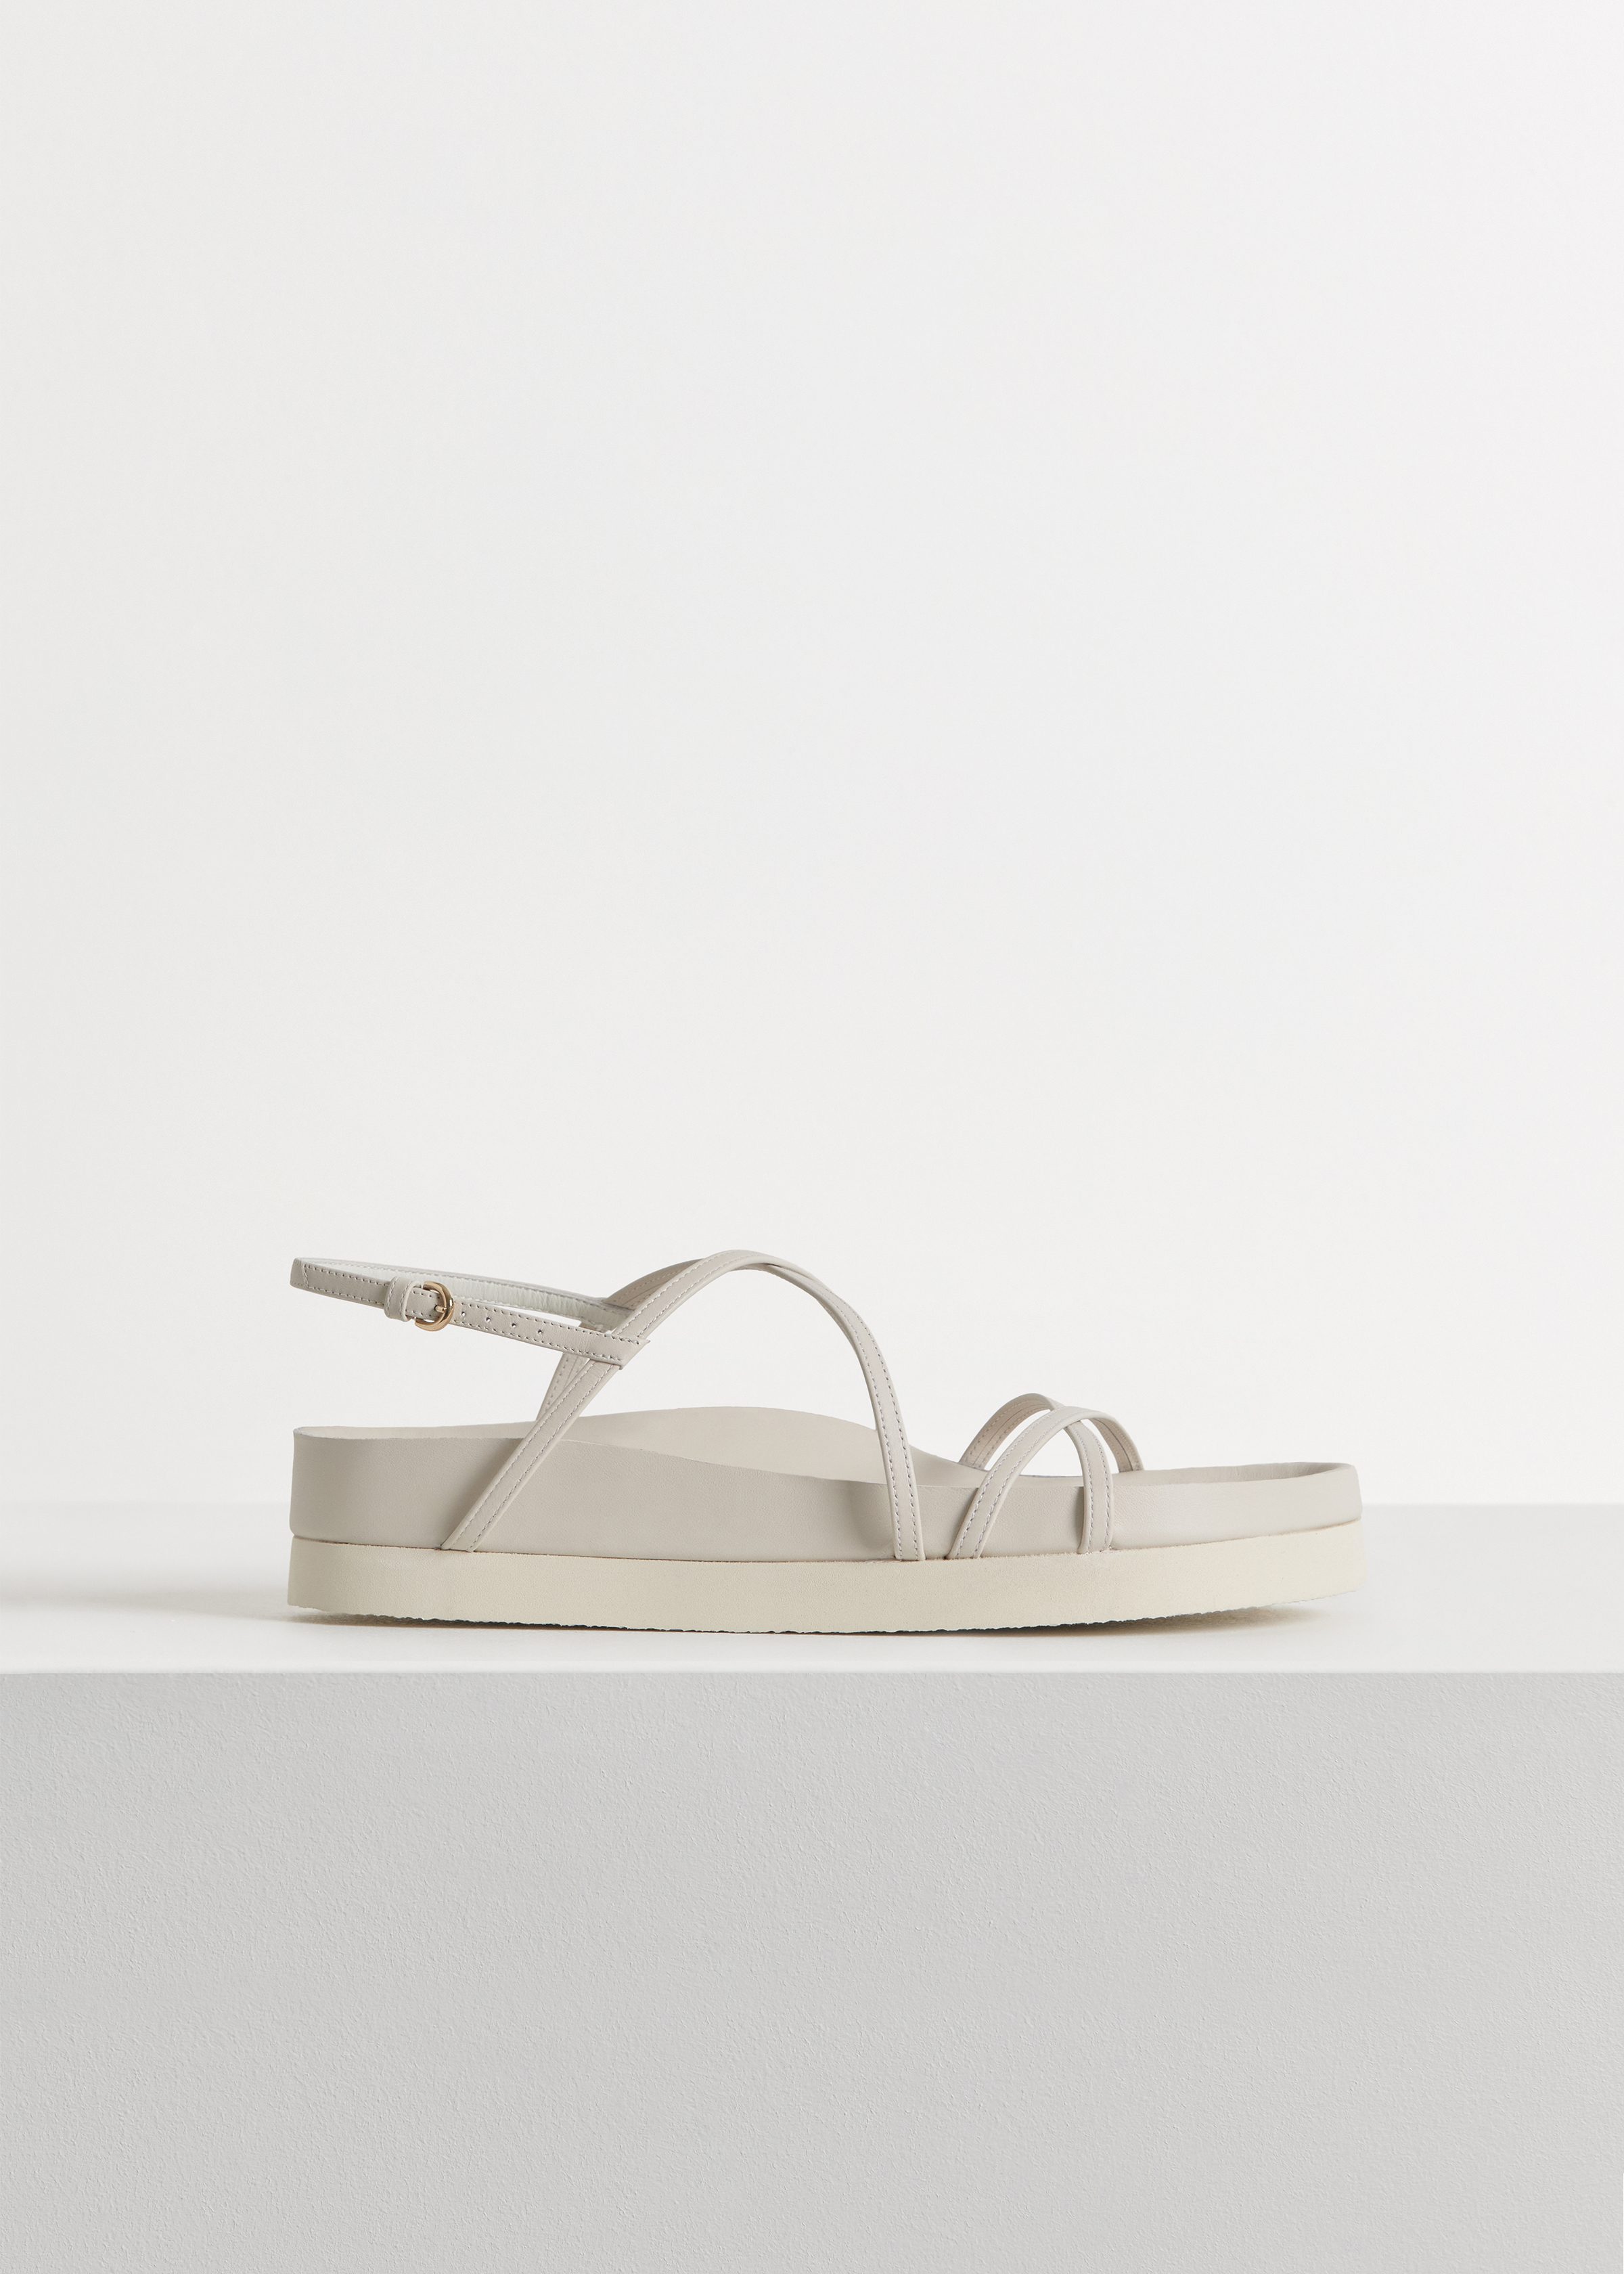 Thin Strap Sandal in Smooth Leather - Black in Ivory by Co Collections